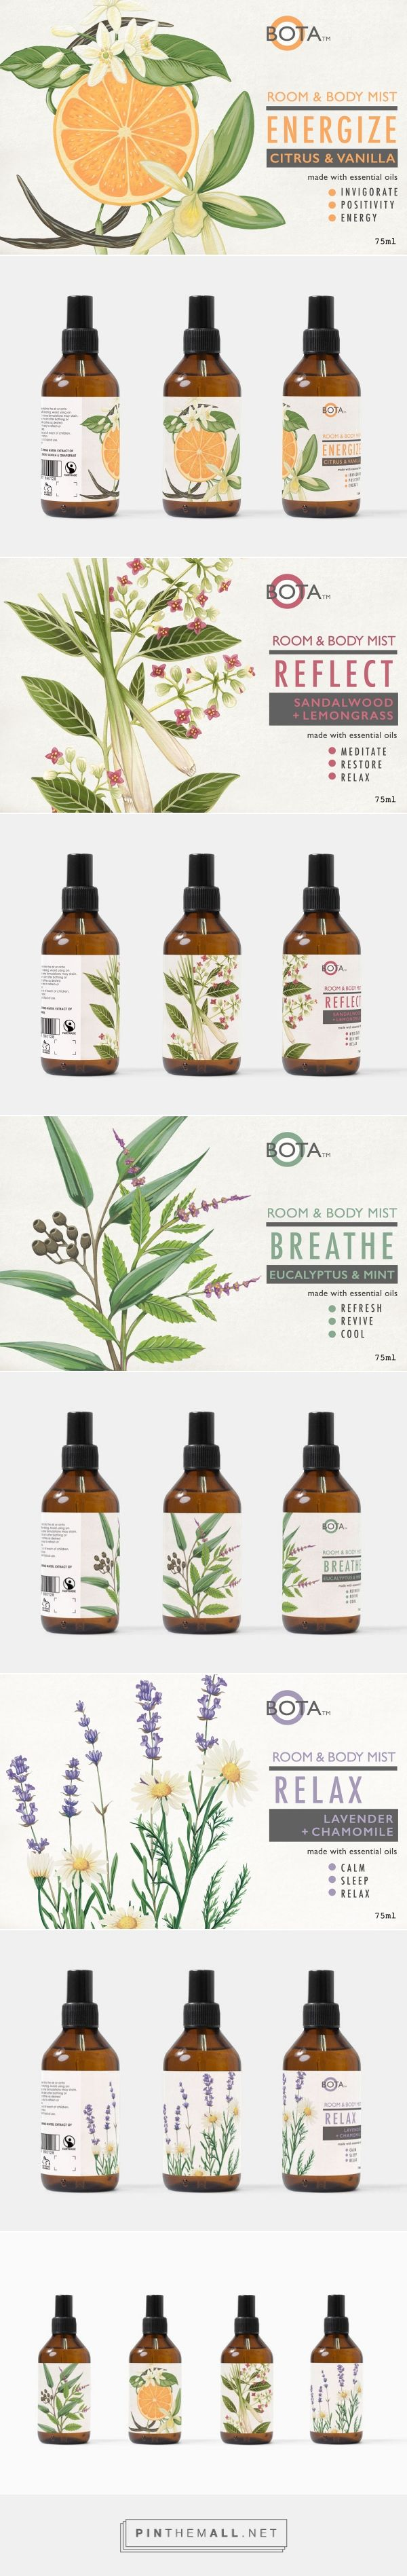 Botanical Body Mist on Behance by Charlotte Day curated by Packaging Diva PD. Hand painted botanical illustration for packaging aromatic room and body spray.